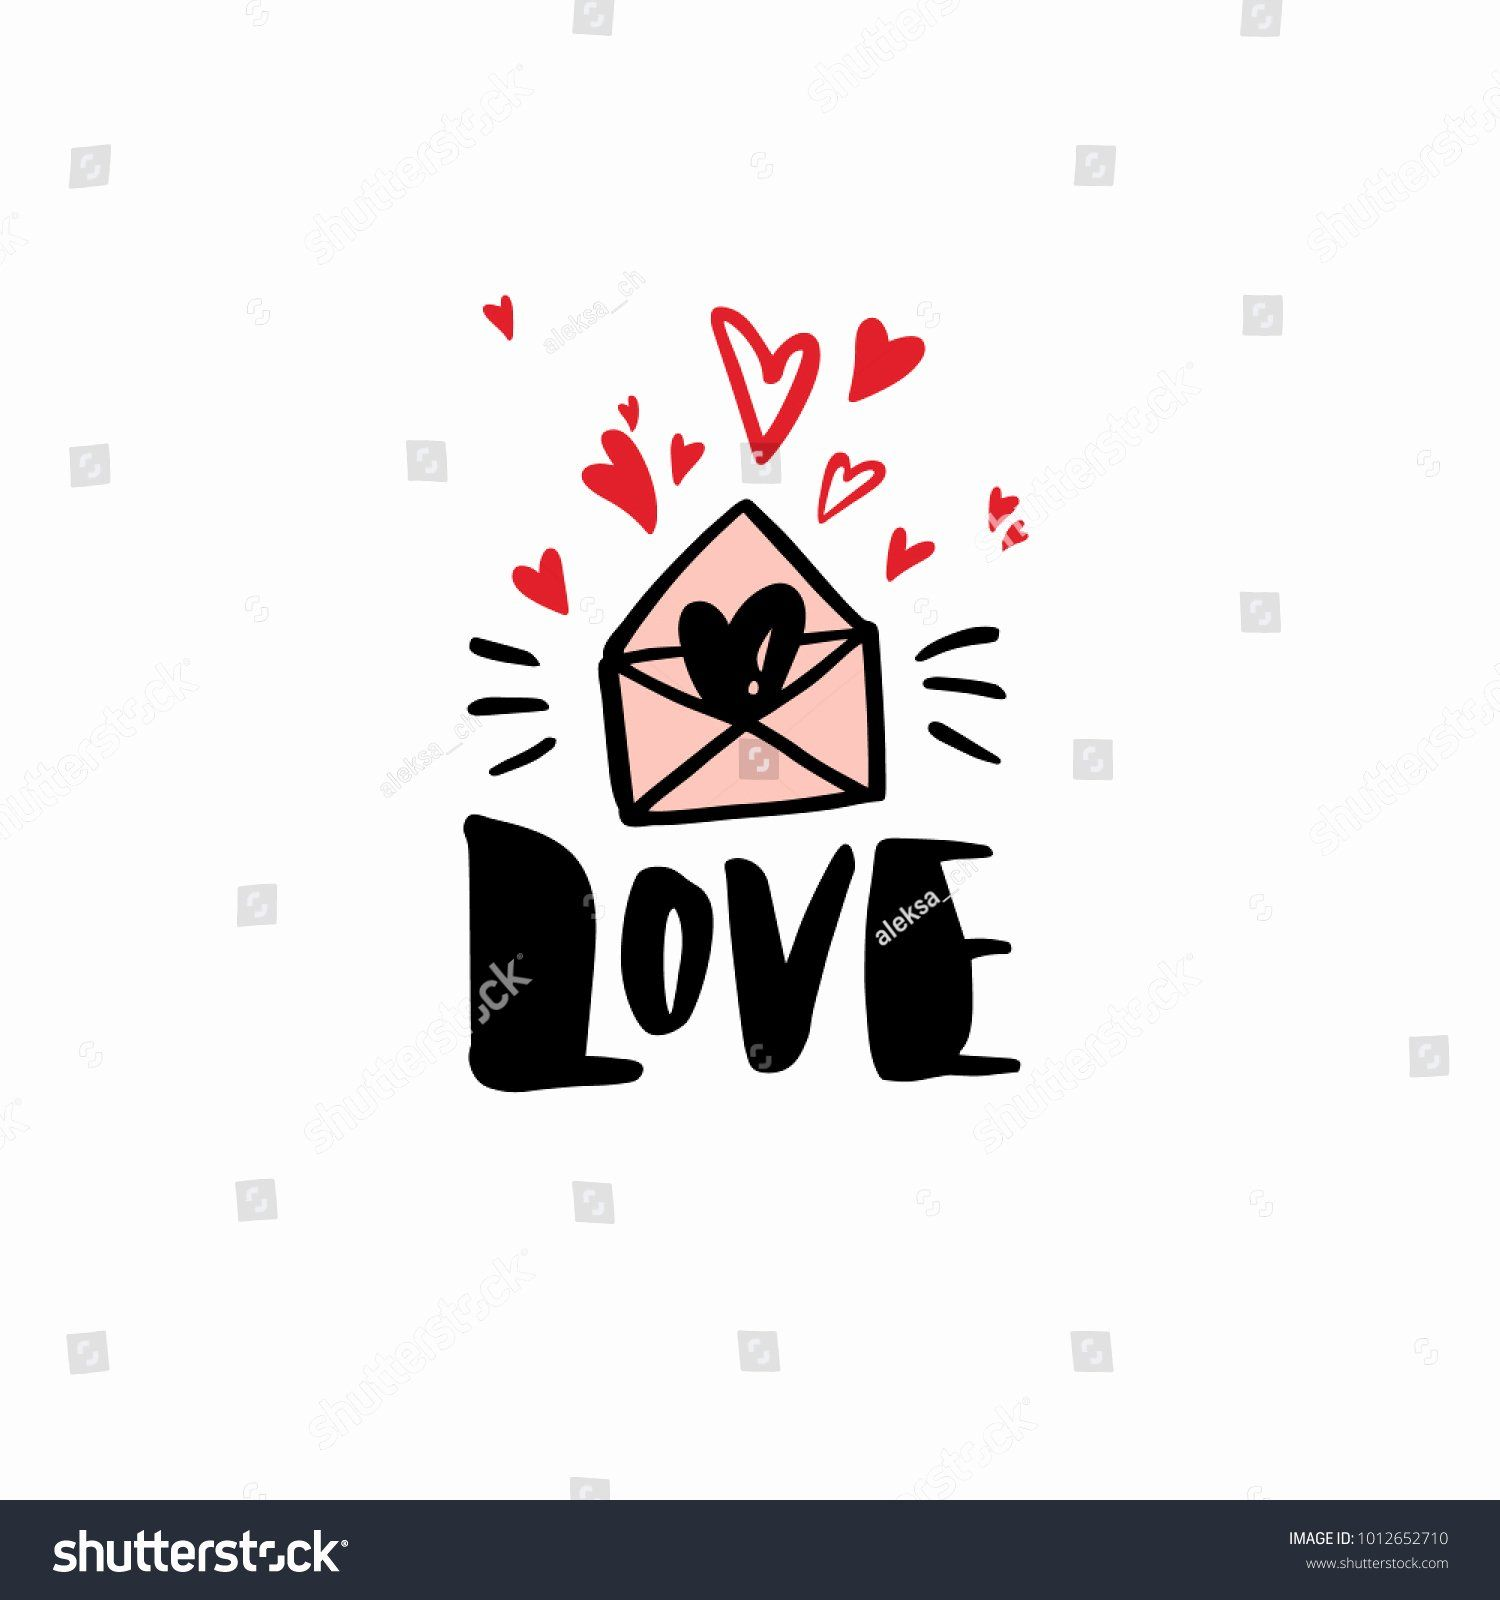 Love Grating Card Inspirational Greeting Card Template Word Monzarglauf Verband Cards Card Templates Greeting Card Design